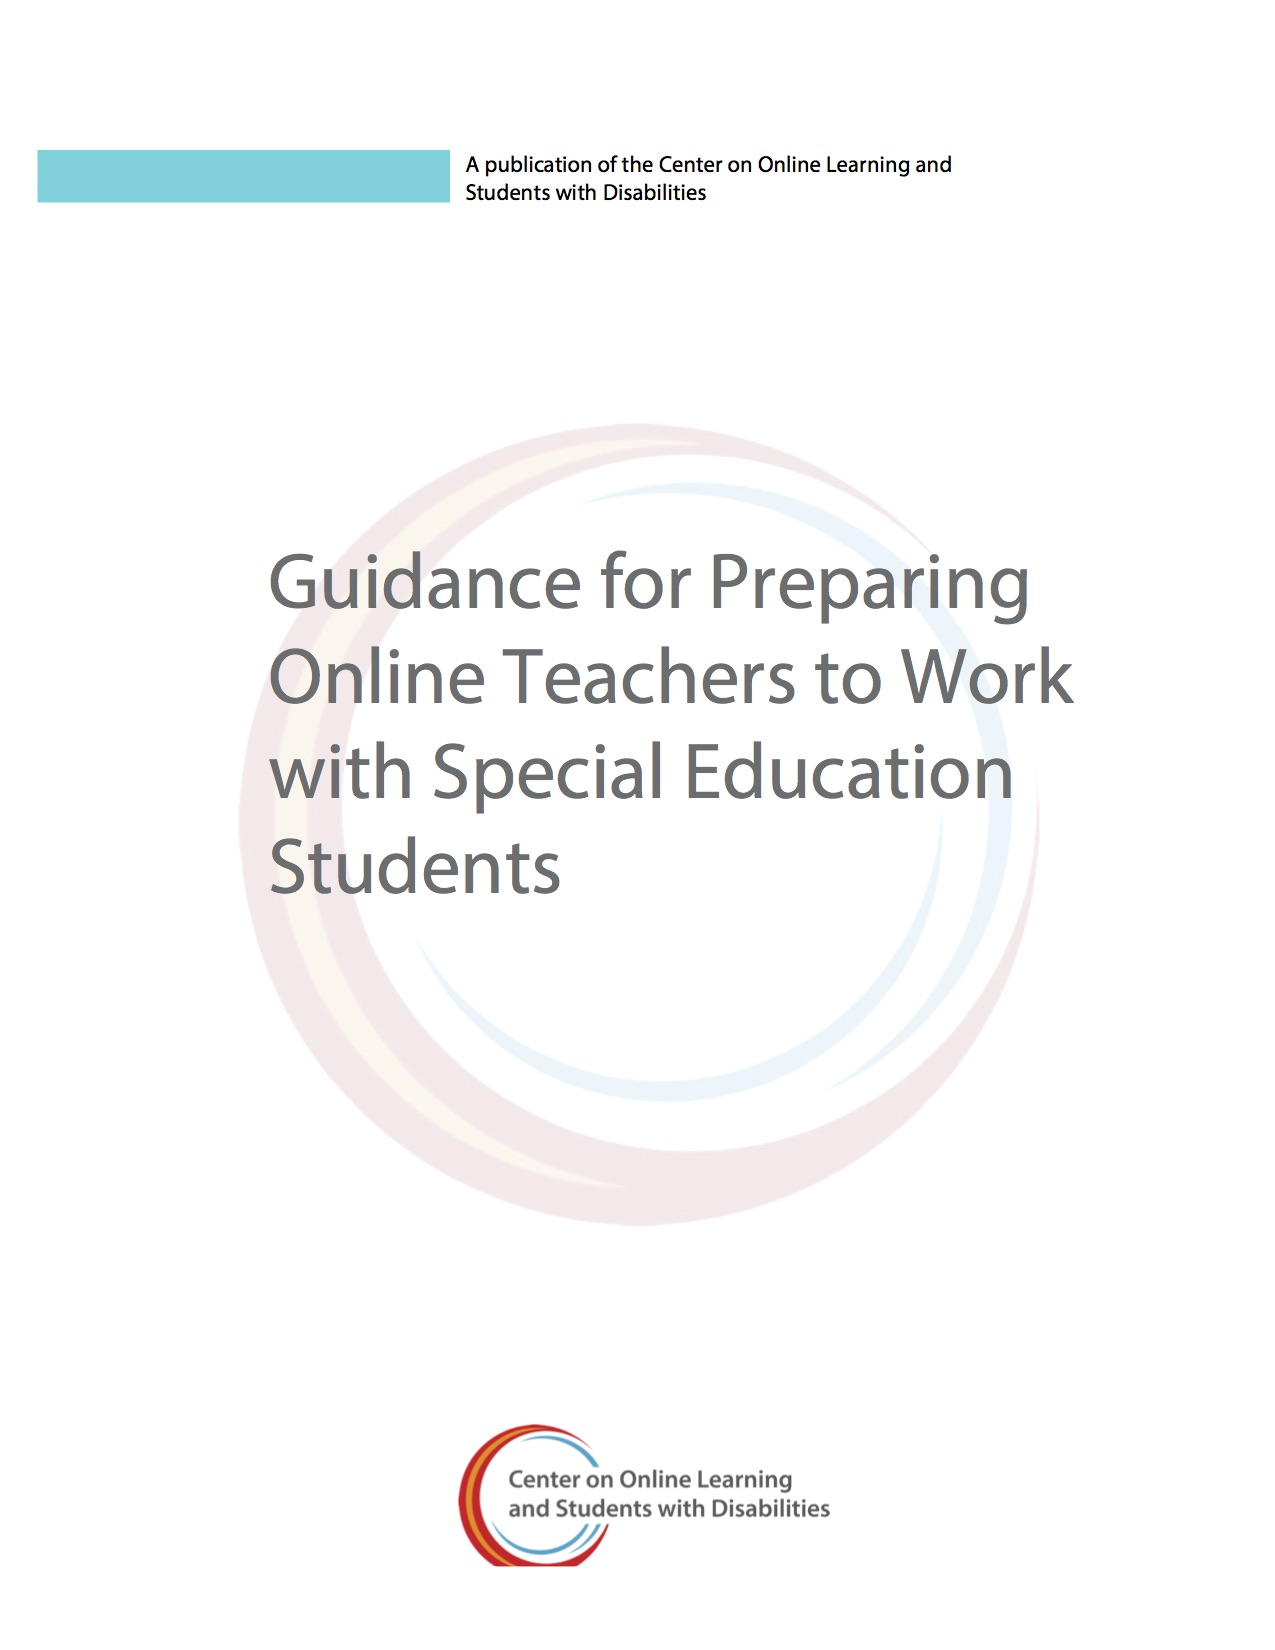 Guidance For Preparing Online Teachers To Work With Special Education Students